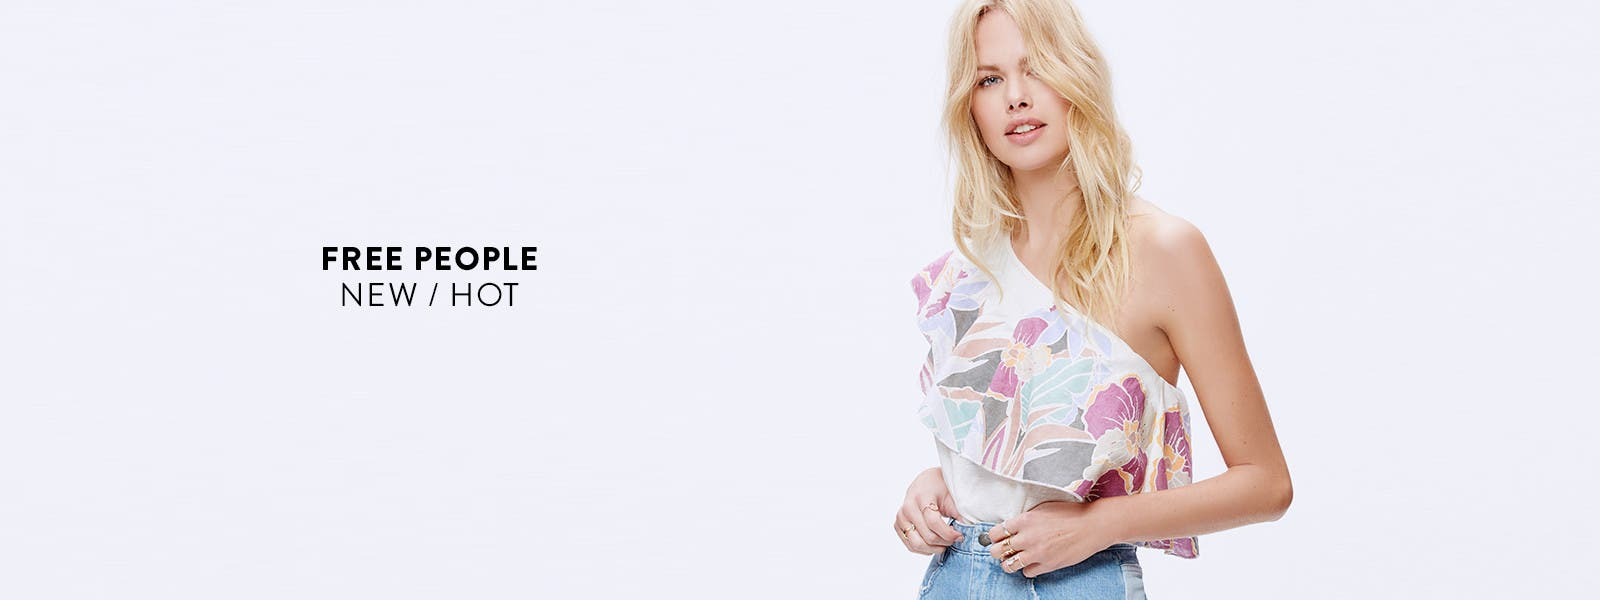 Free People: hot new arrivals.